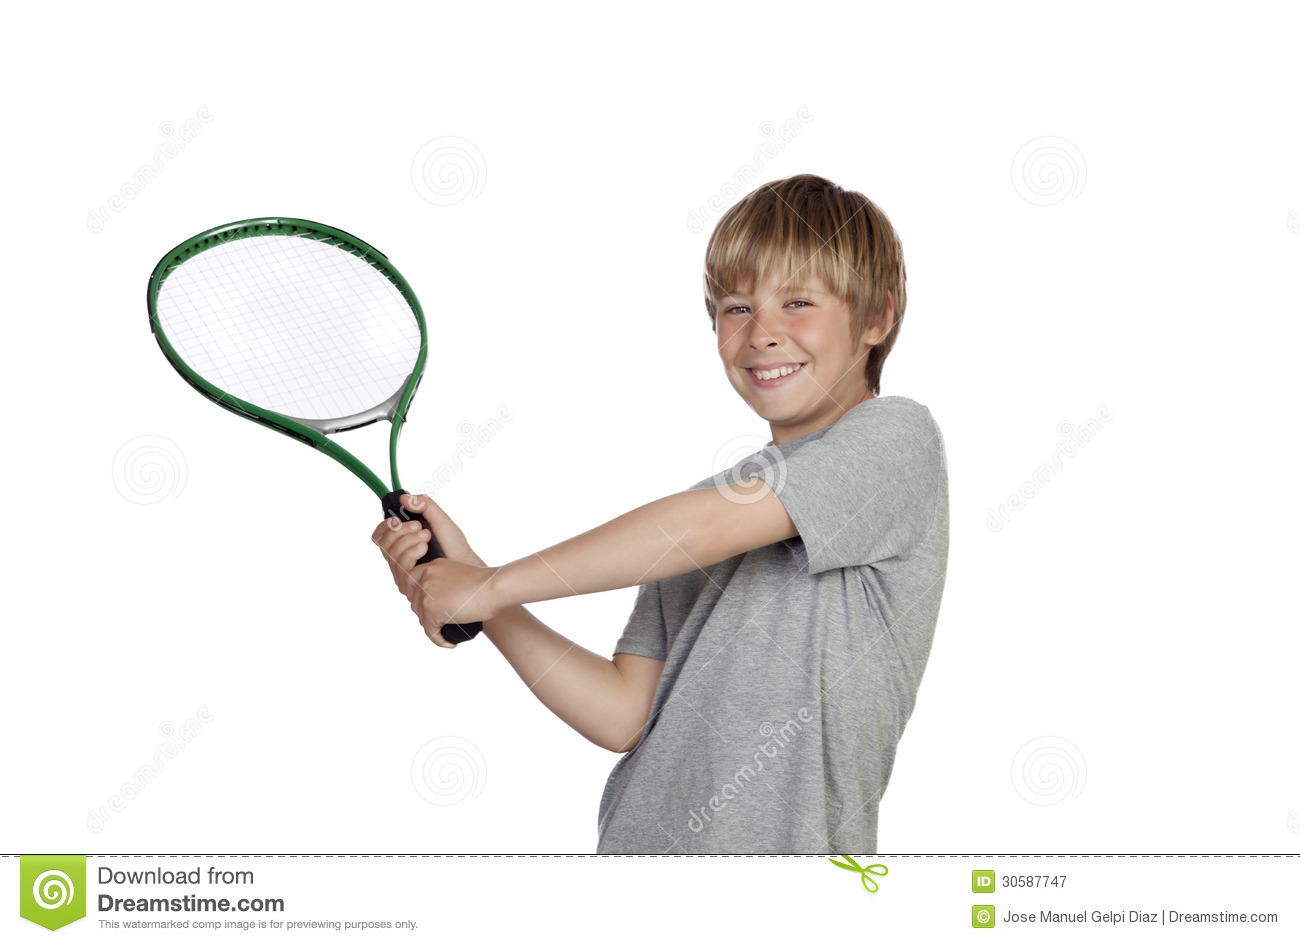 Preteen playing tennis holding racket isolated on white background.